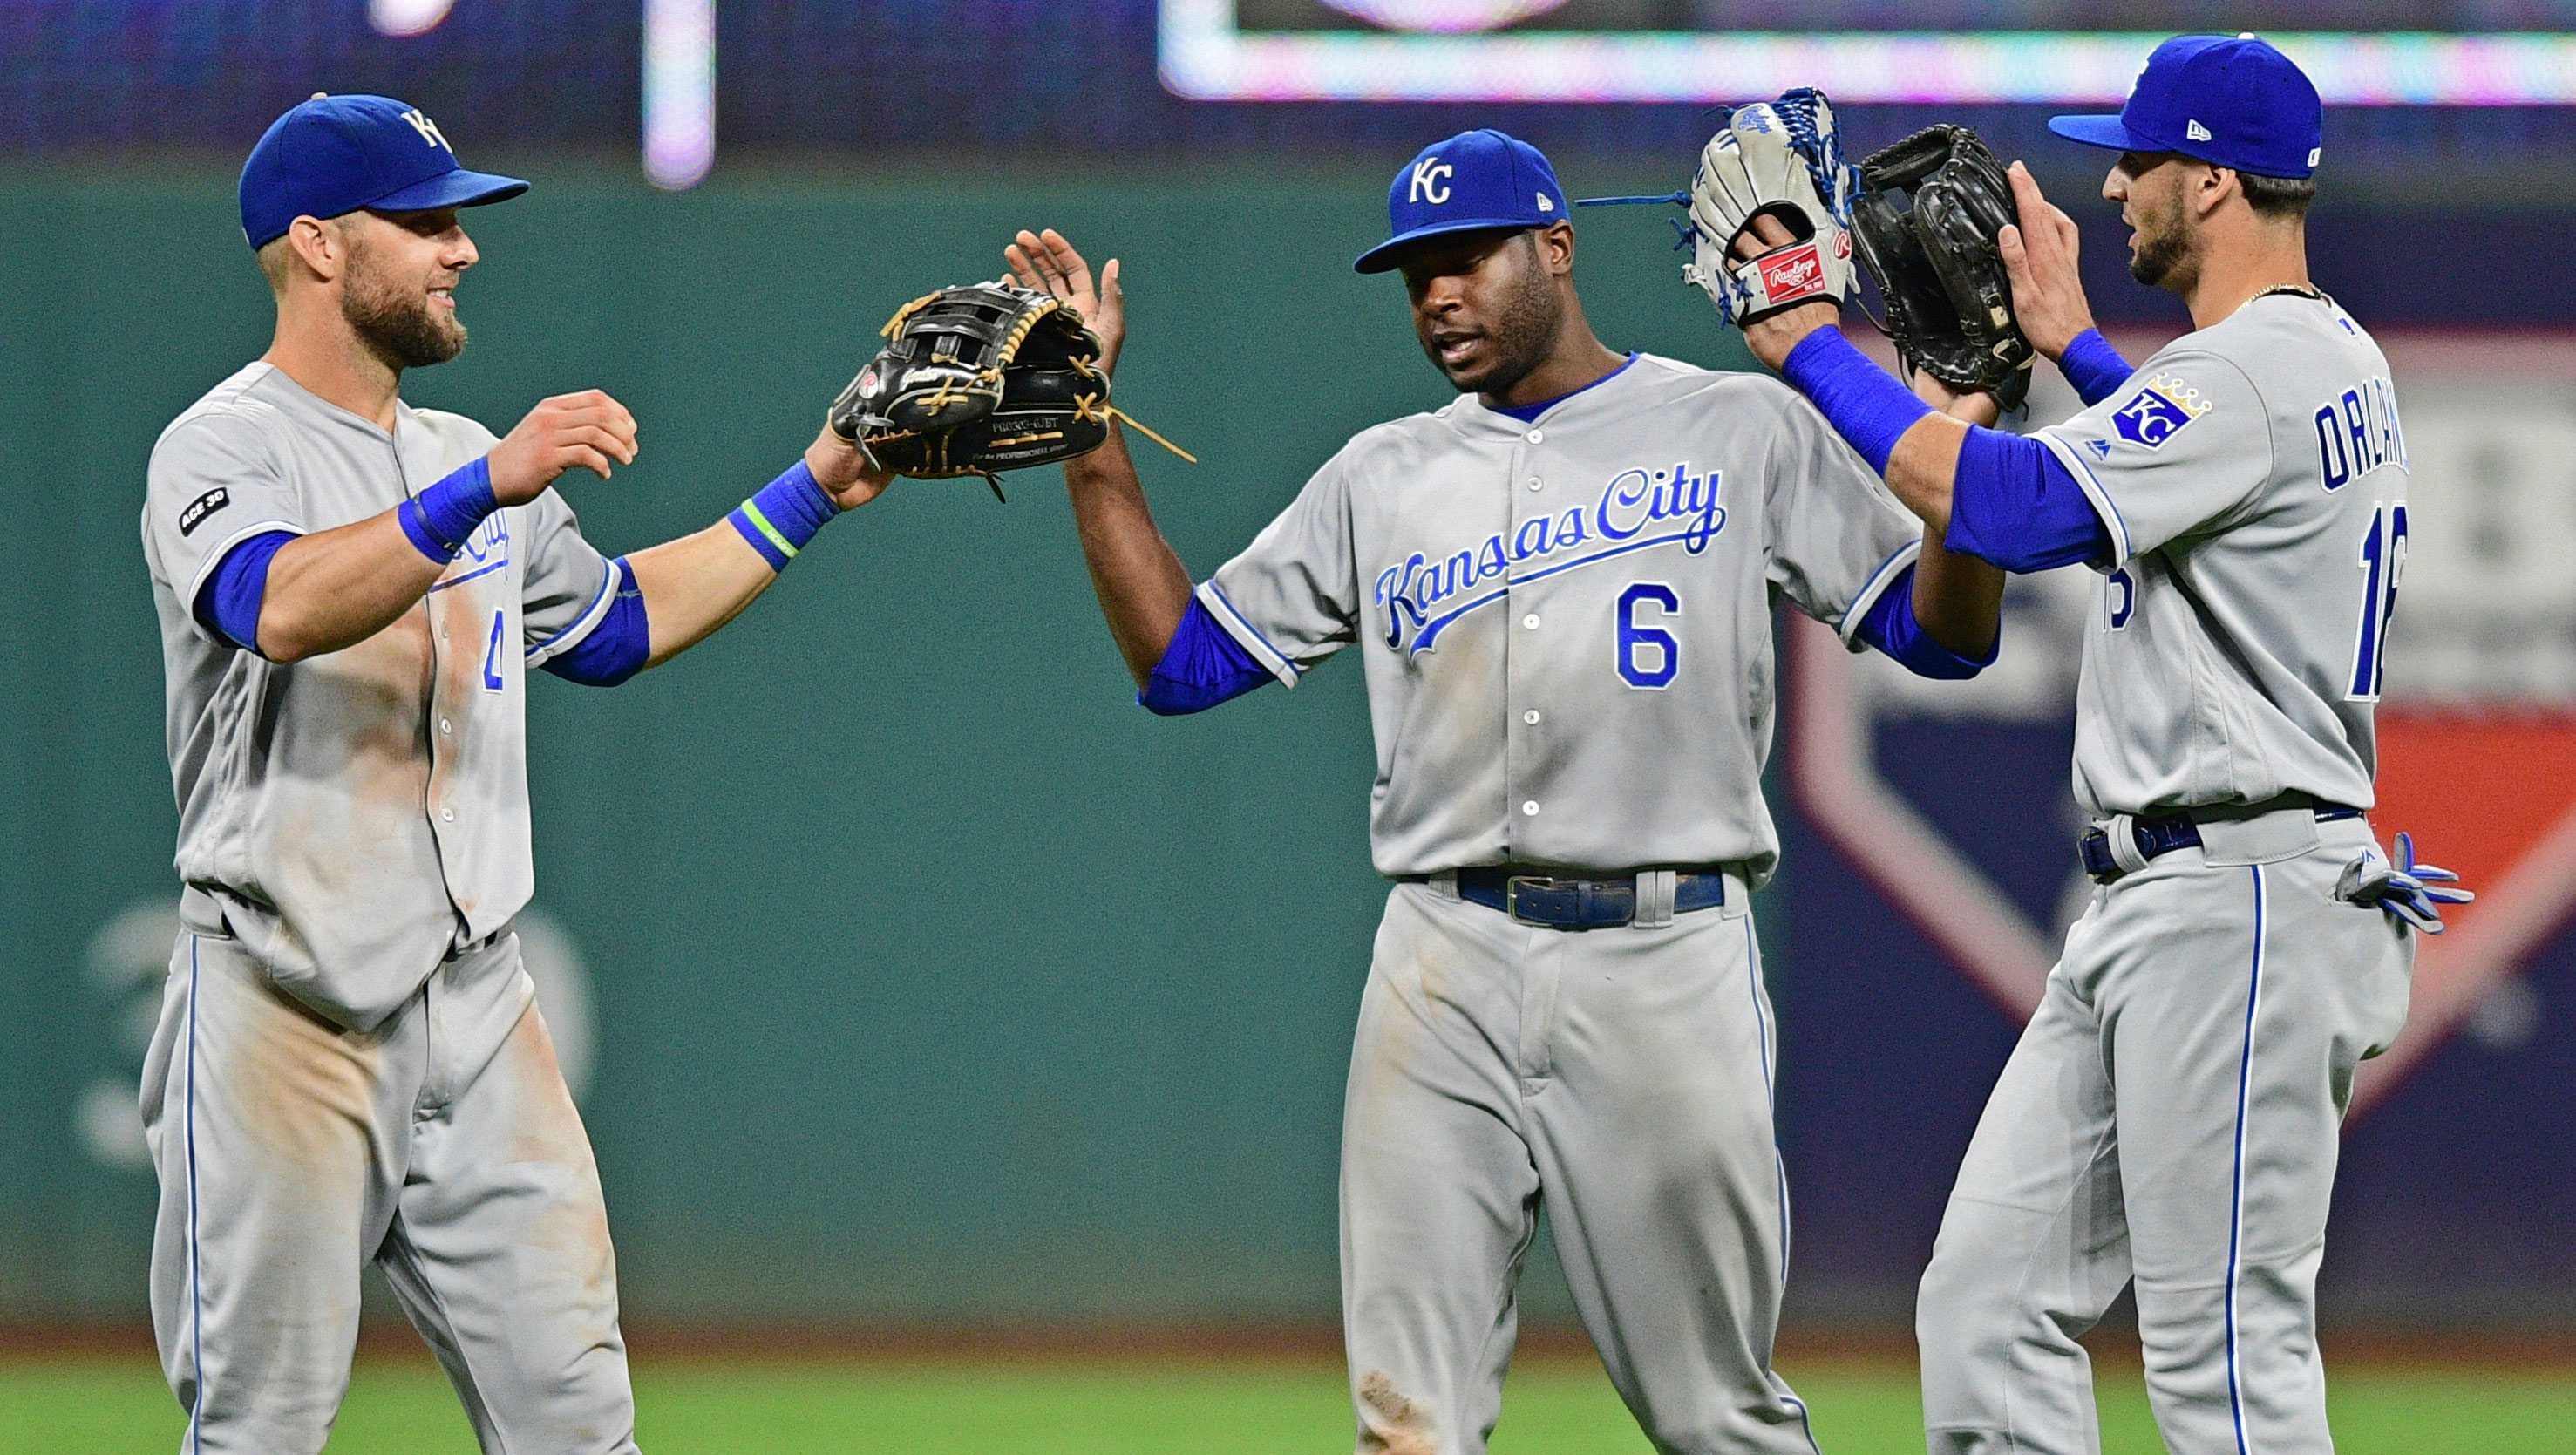 Kansas City Royals,' Alex Gordon, left, Lorenzo Cain and Paulo Orlando celebrate after they defeated the Cleveland Indians in a baseball game, Friday, Sept. 15, 2017, in Cleveland. (AP Photo/David Dermer)